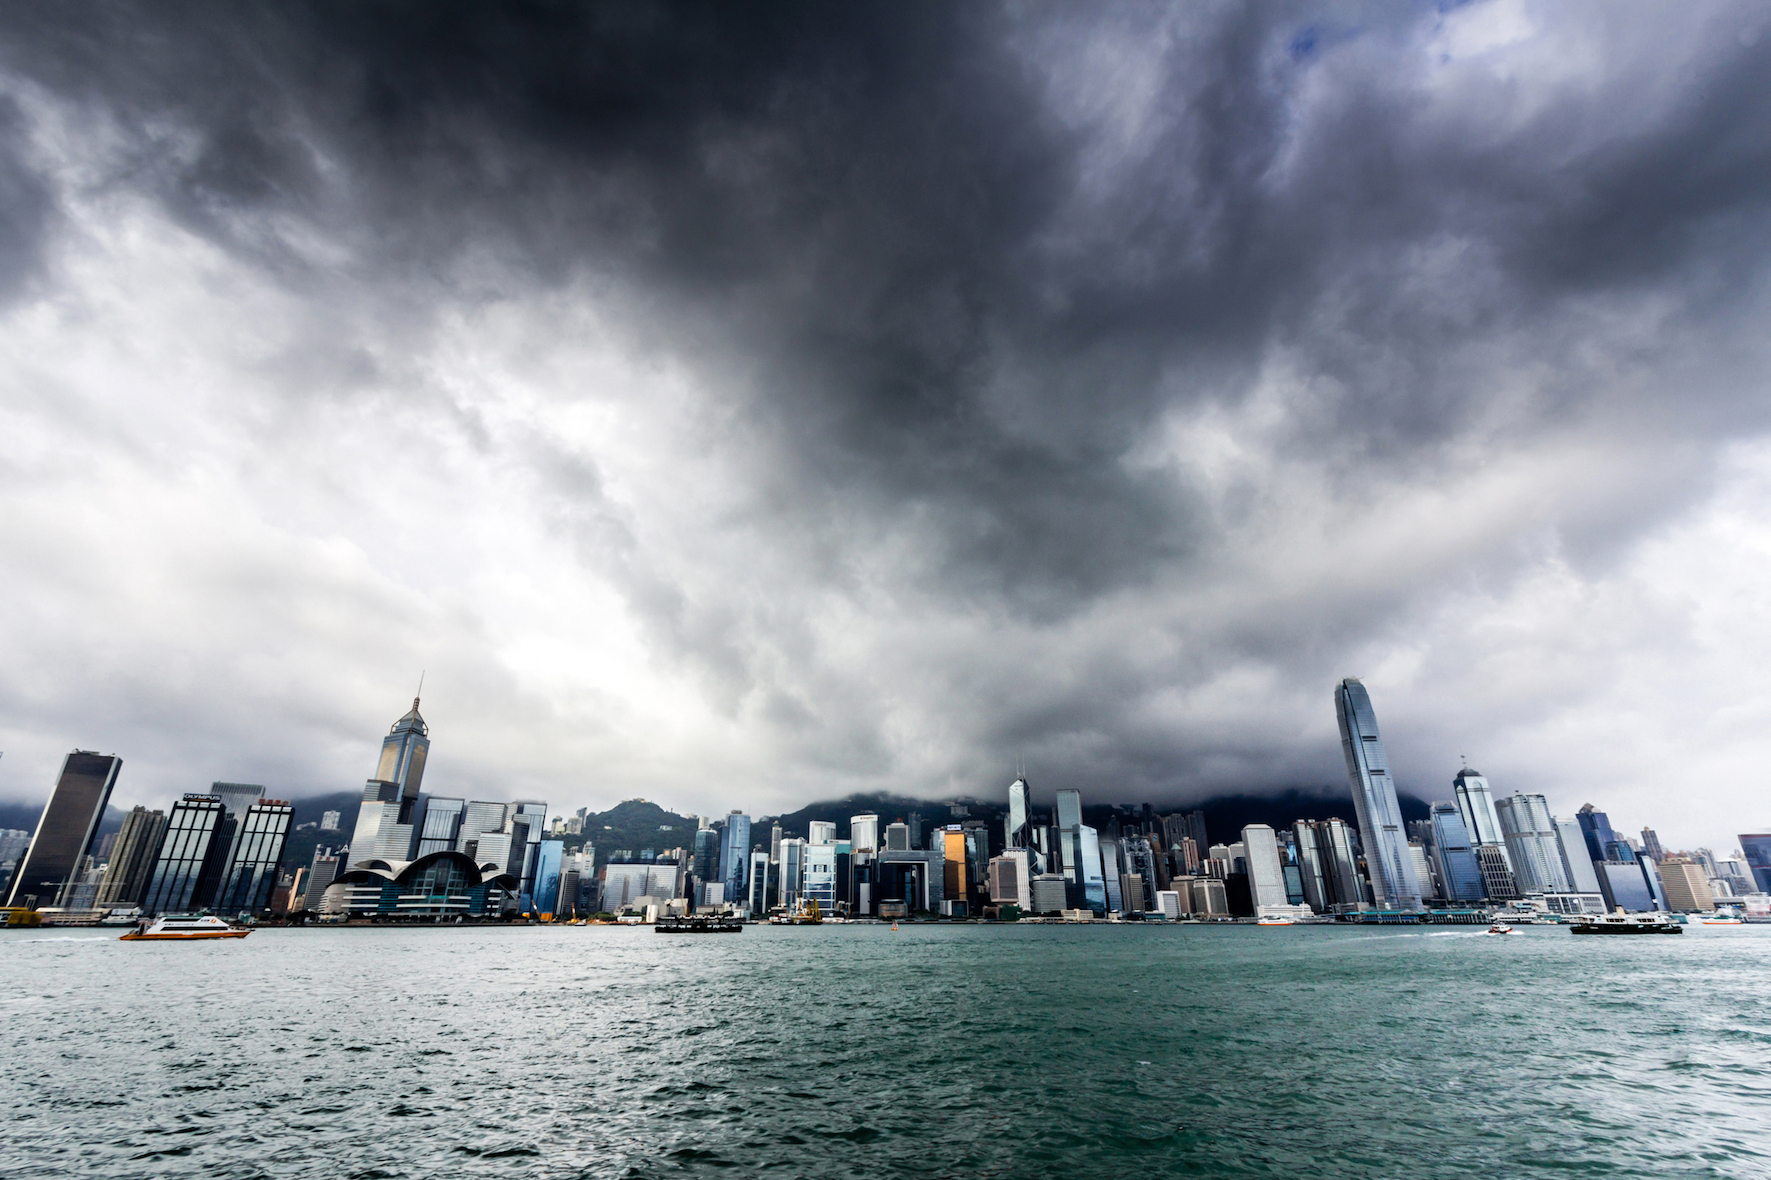 Researchers at the Chinese Academy of Sciences are describing how tropical cyclones have a major impact on the air quality in Hong Kong.